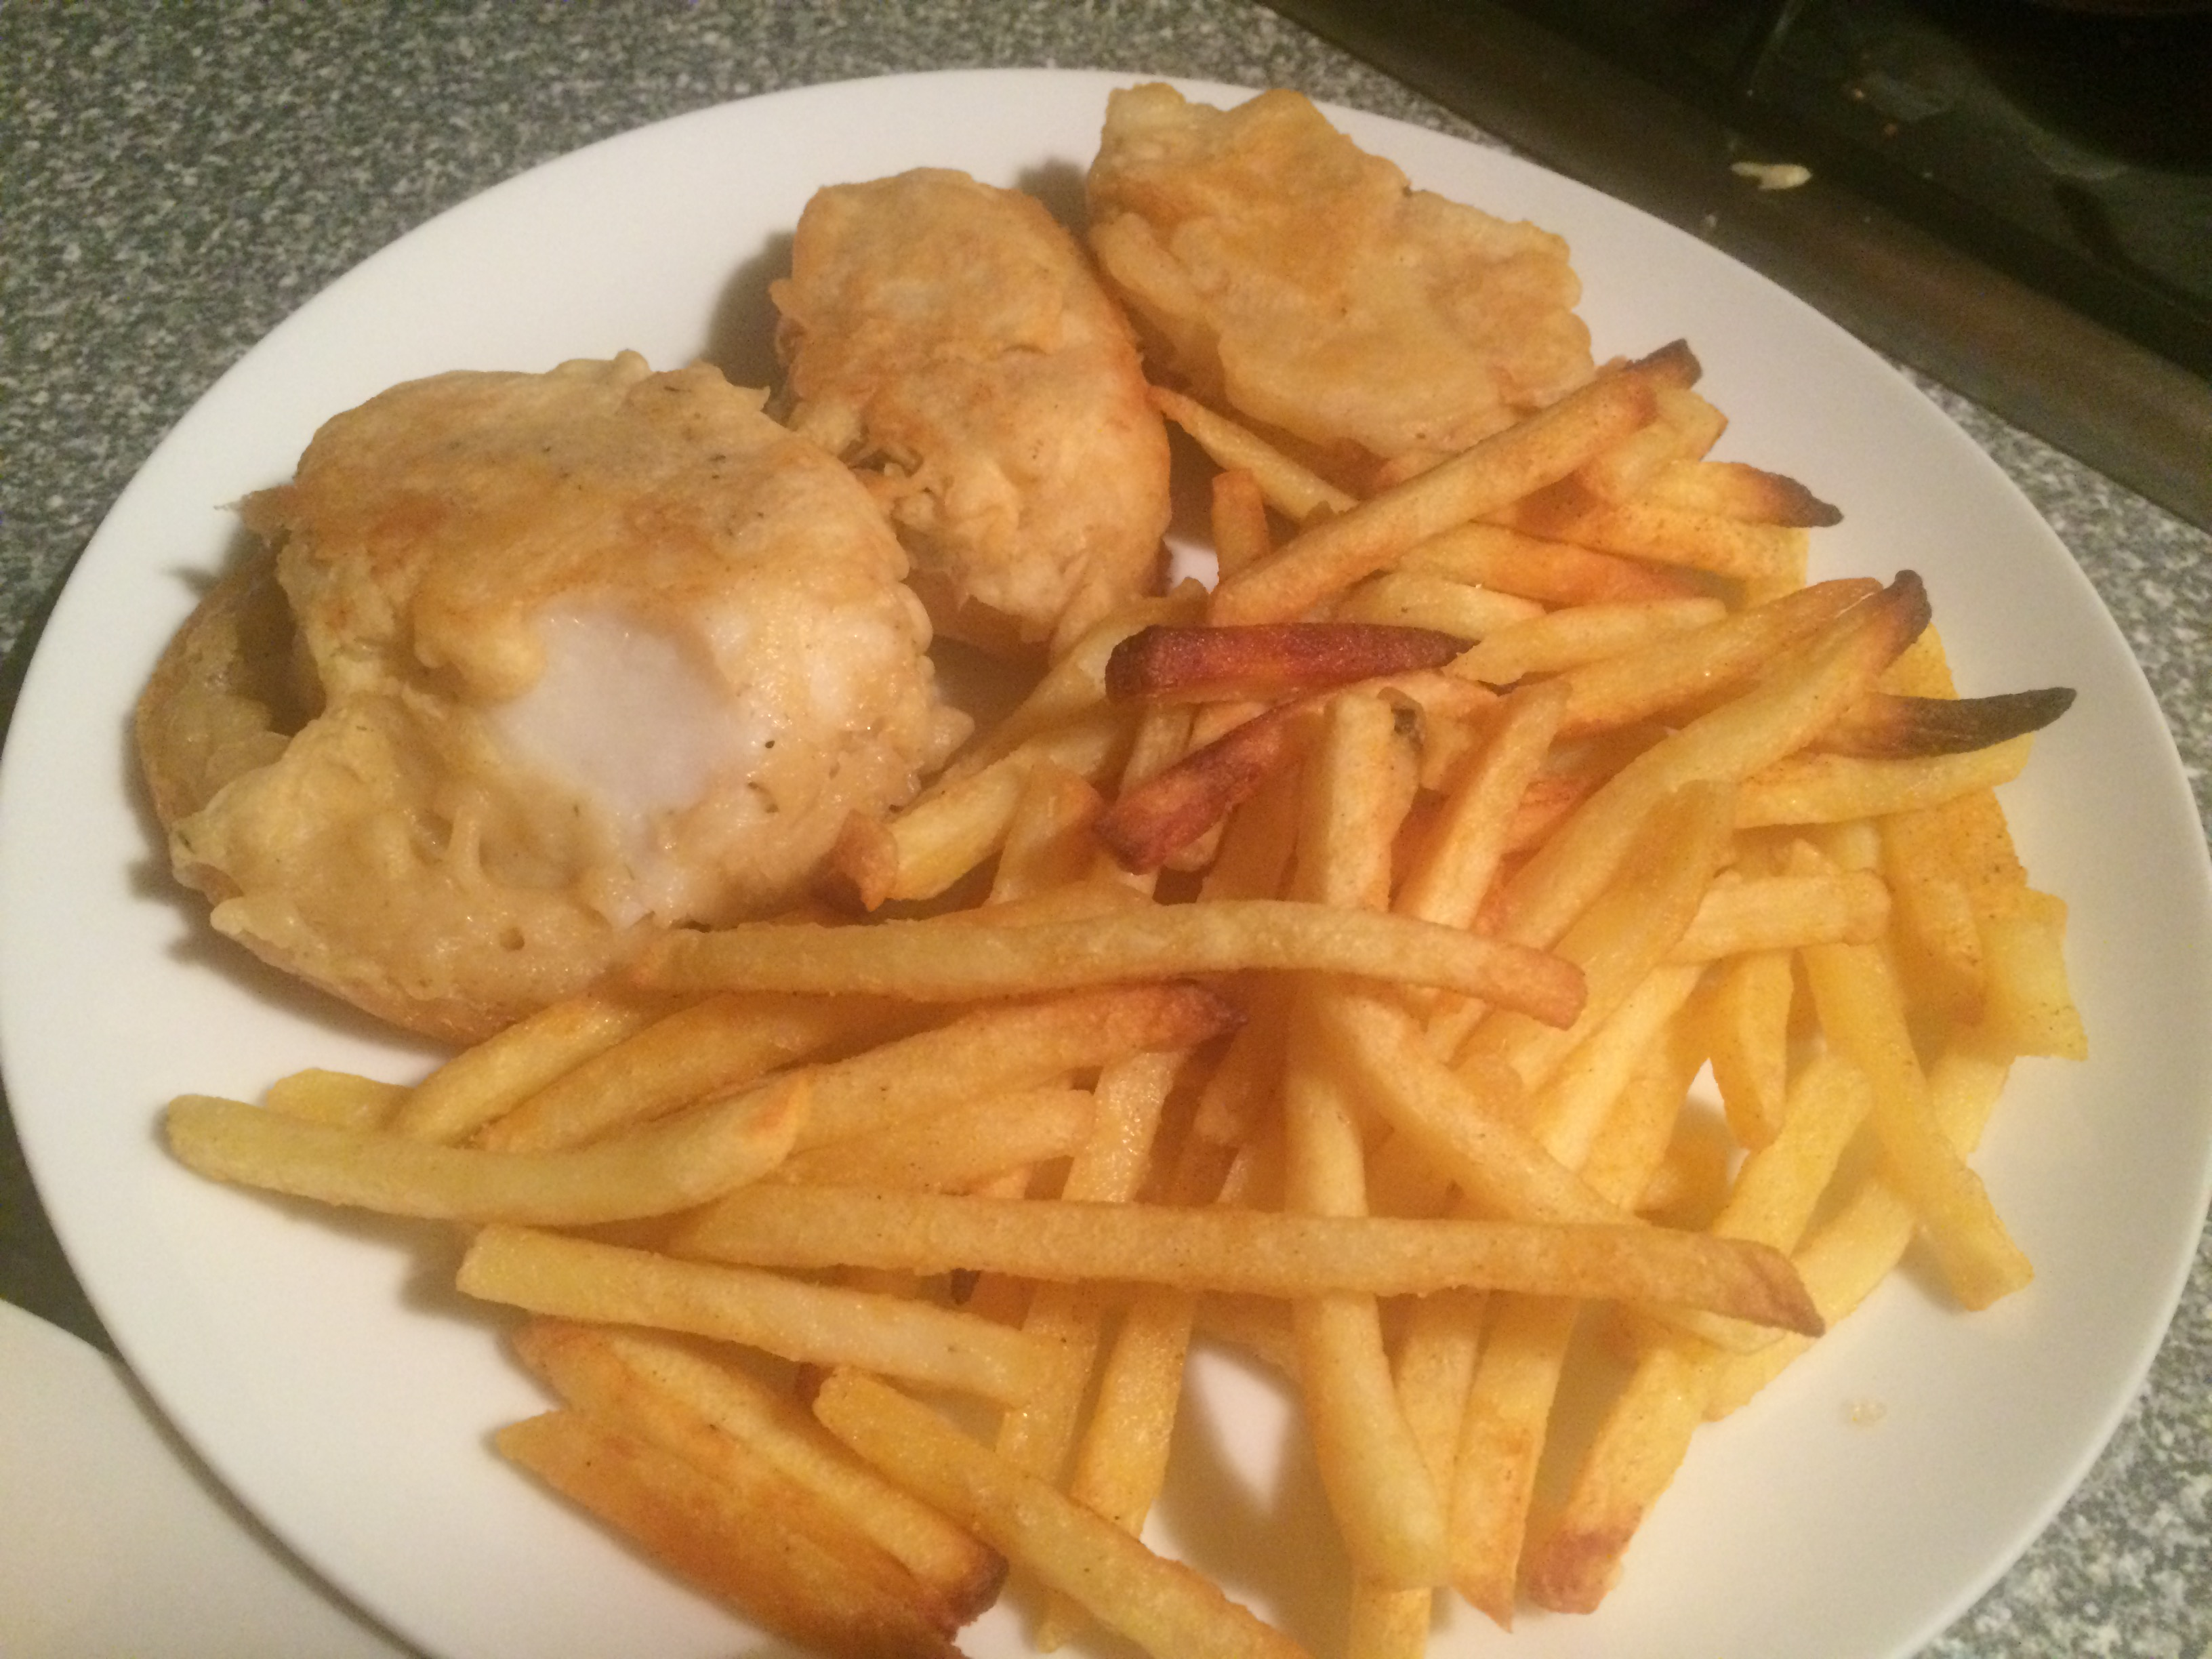 Battered Cod and Chips